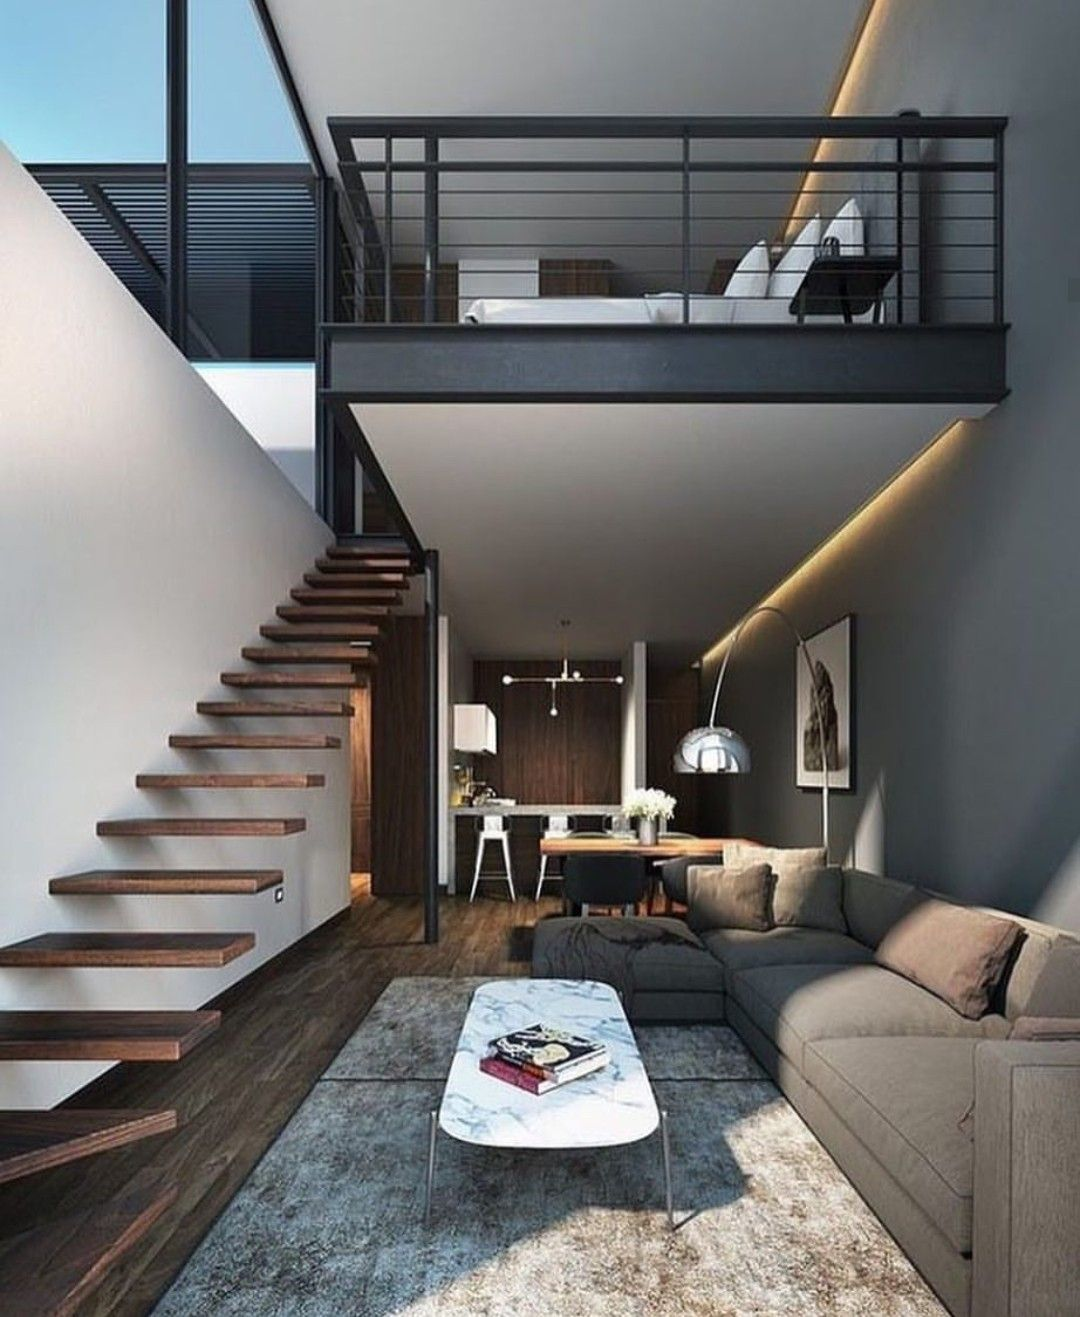 Pin By Cristal On Home Travel Loft Interiors Loft Design Modern House Design